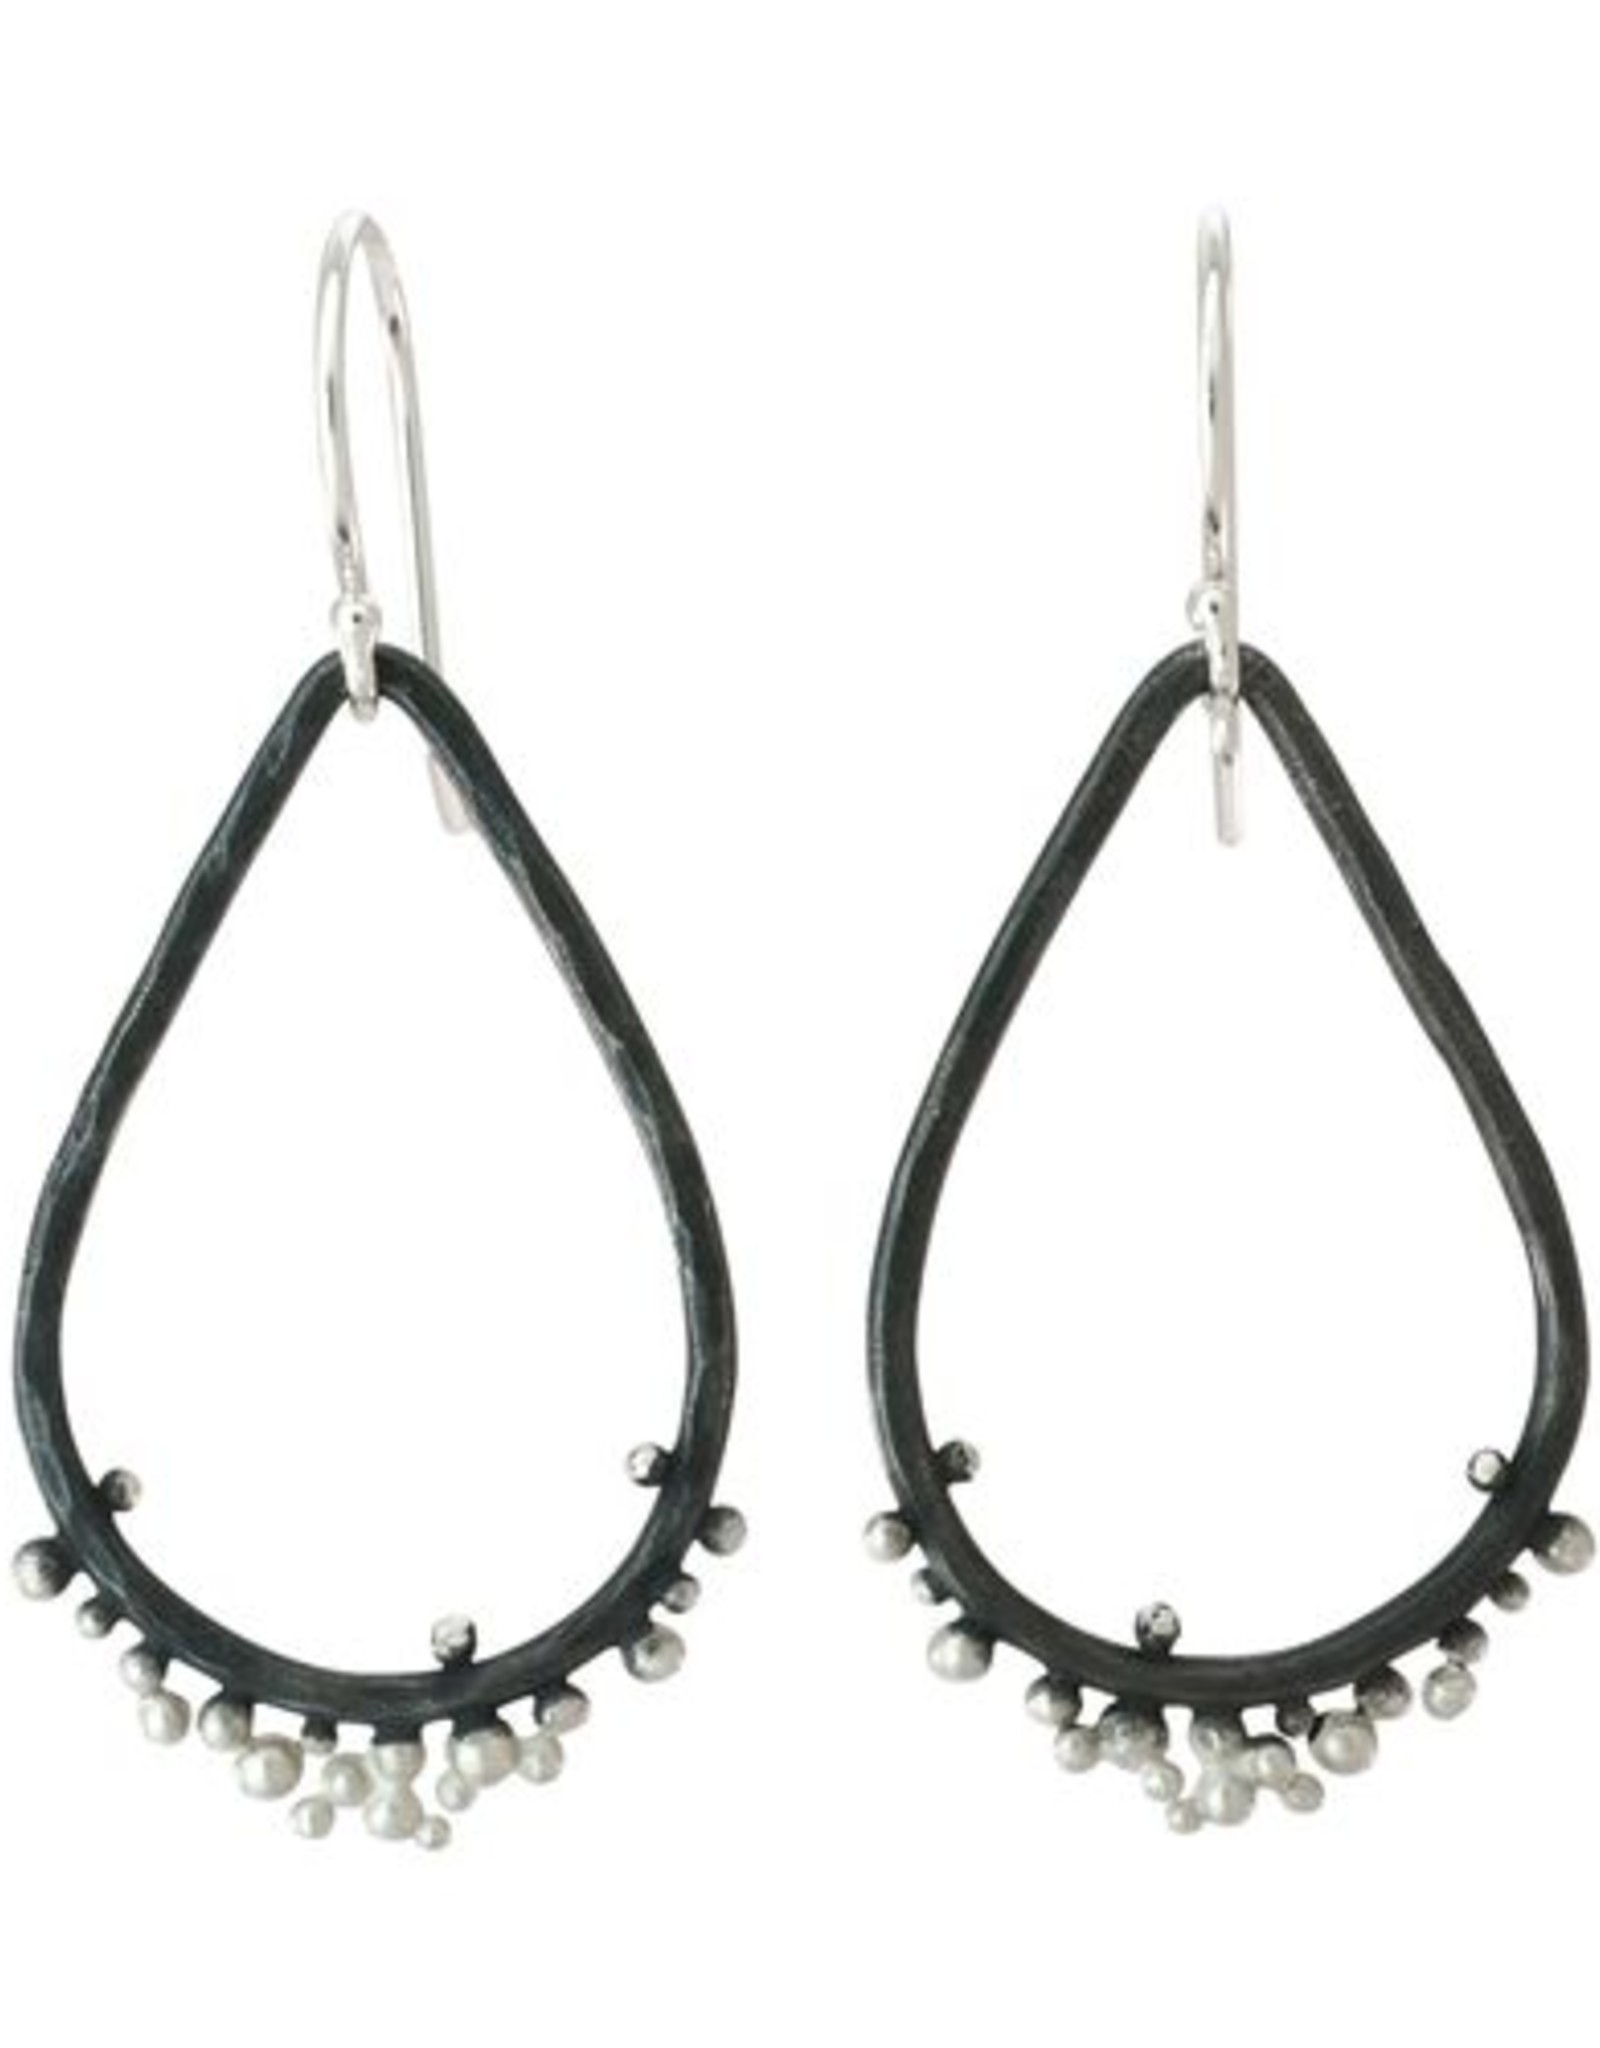 Sarah Swell Flotsam & Jetsam Teardrop Earrings